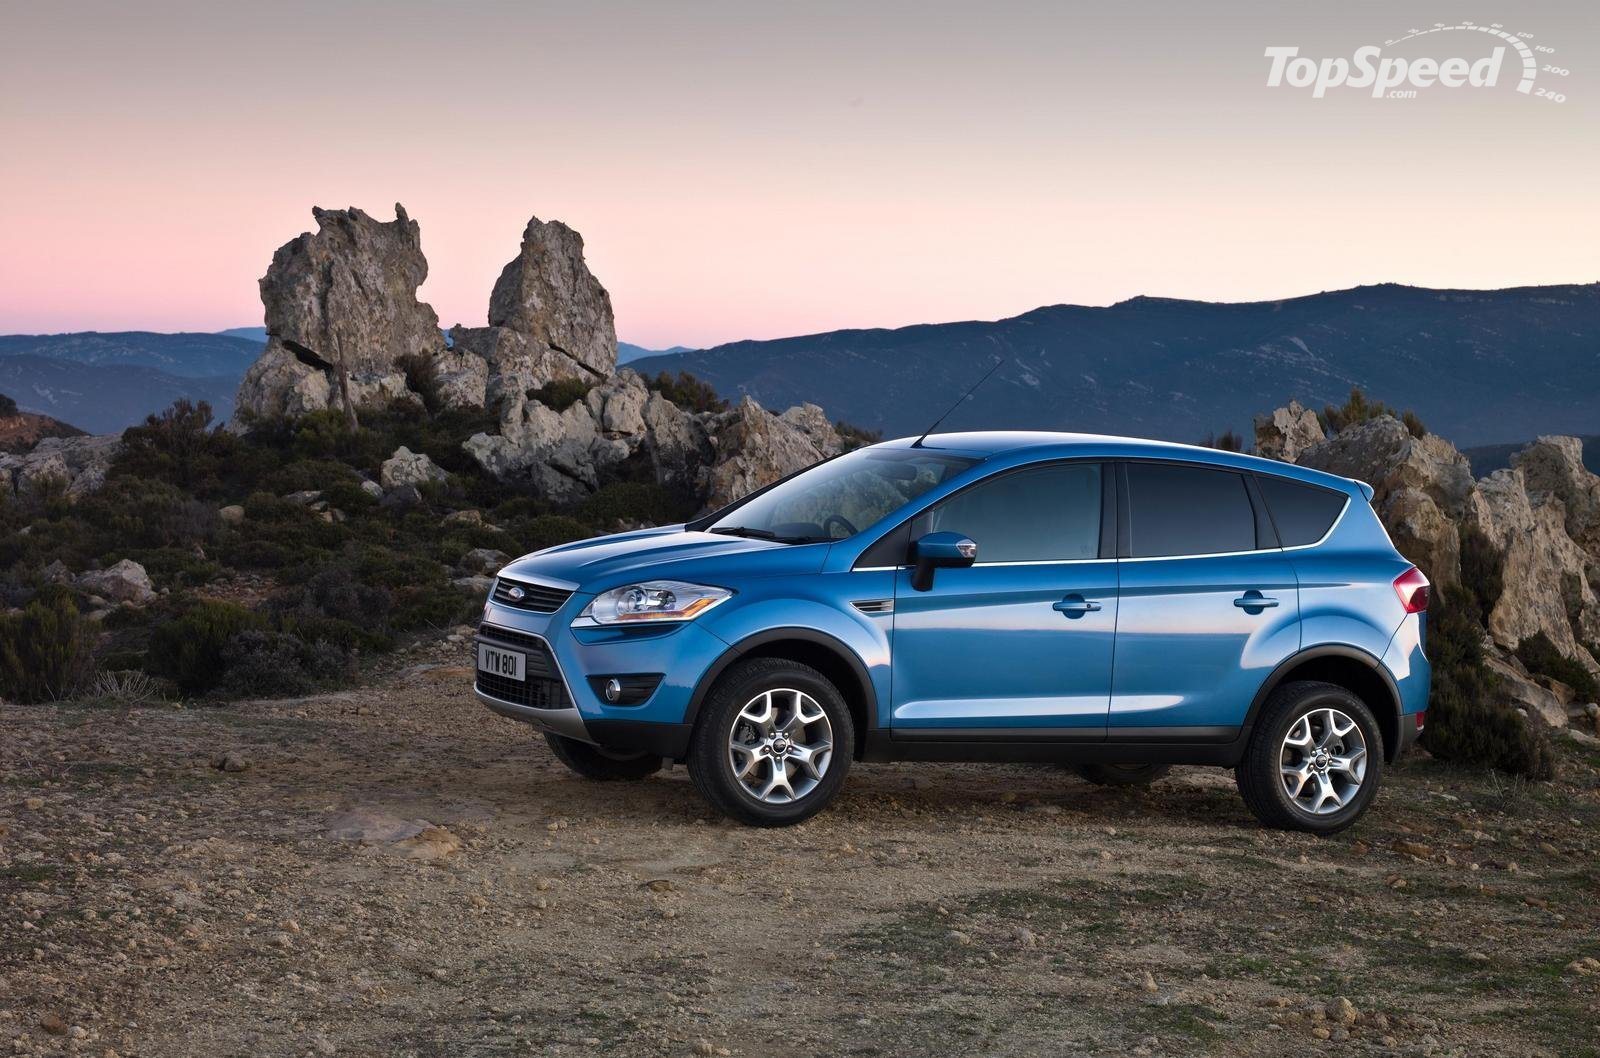 ford kuga 2009 pictures #8